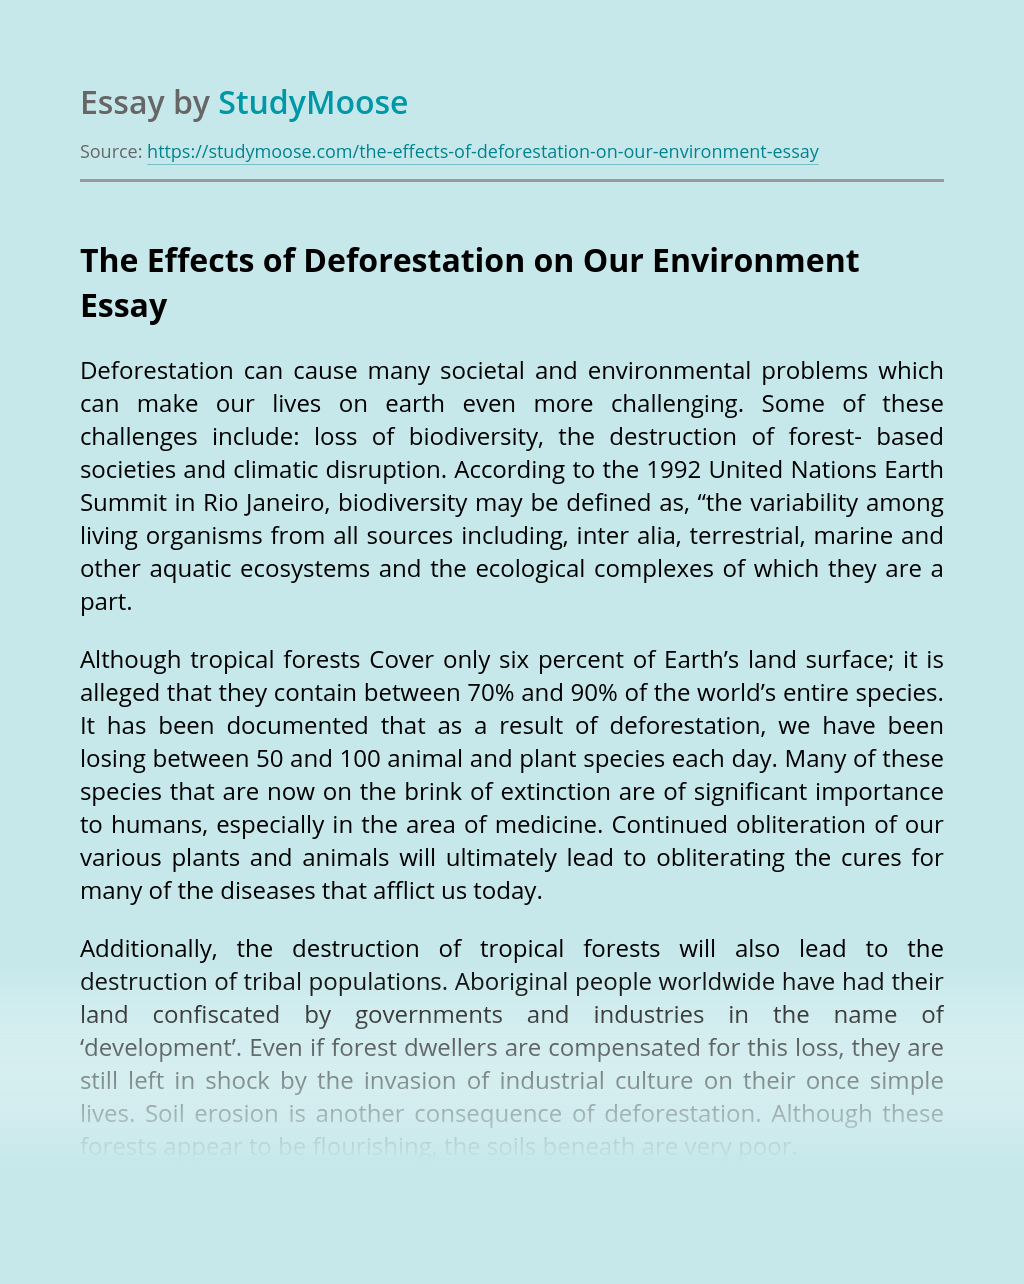 The Effects of Deforestation on Our Environment